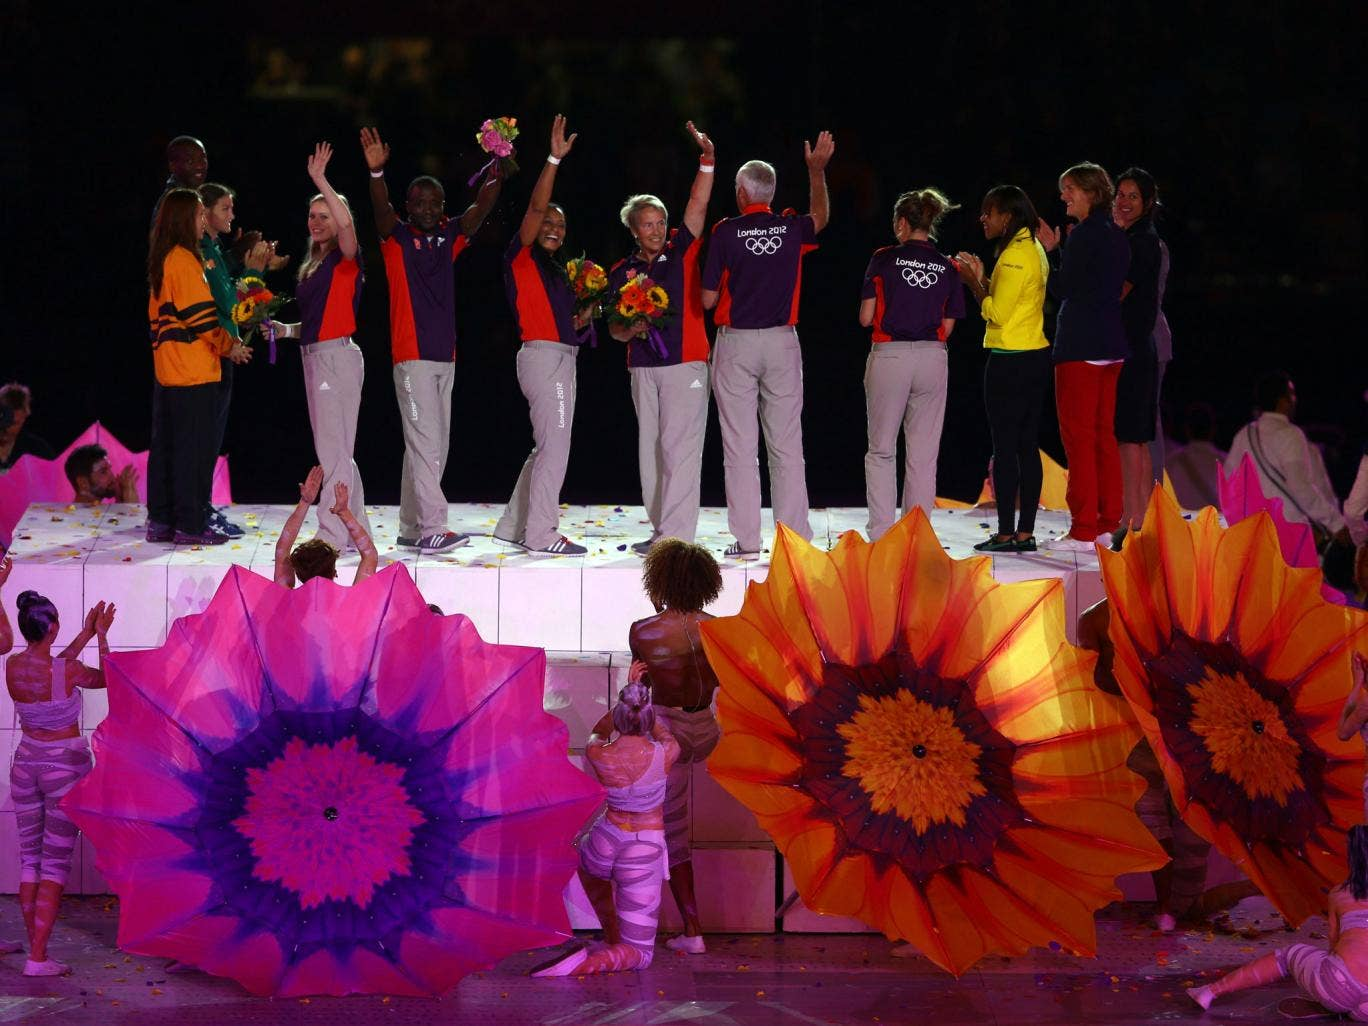 Flower power: The Games Makers inspired a legacy of volunteering